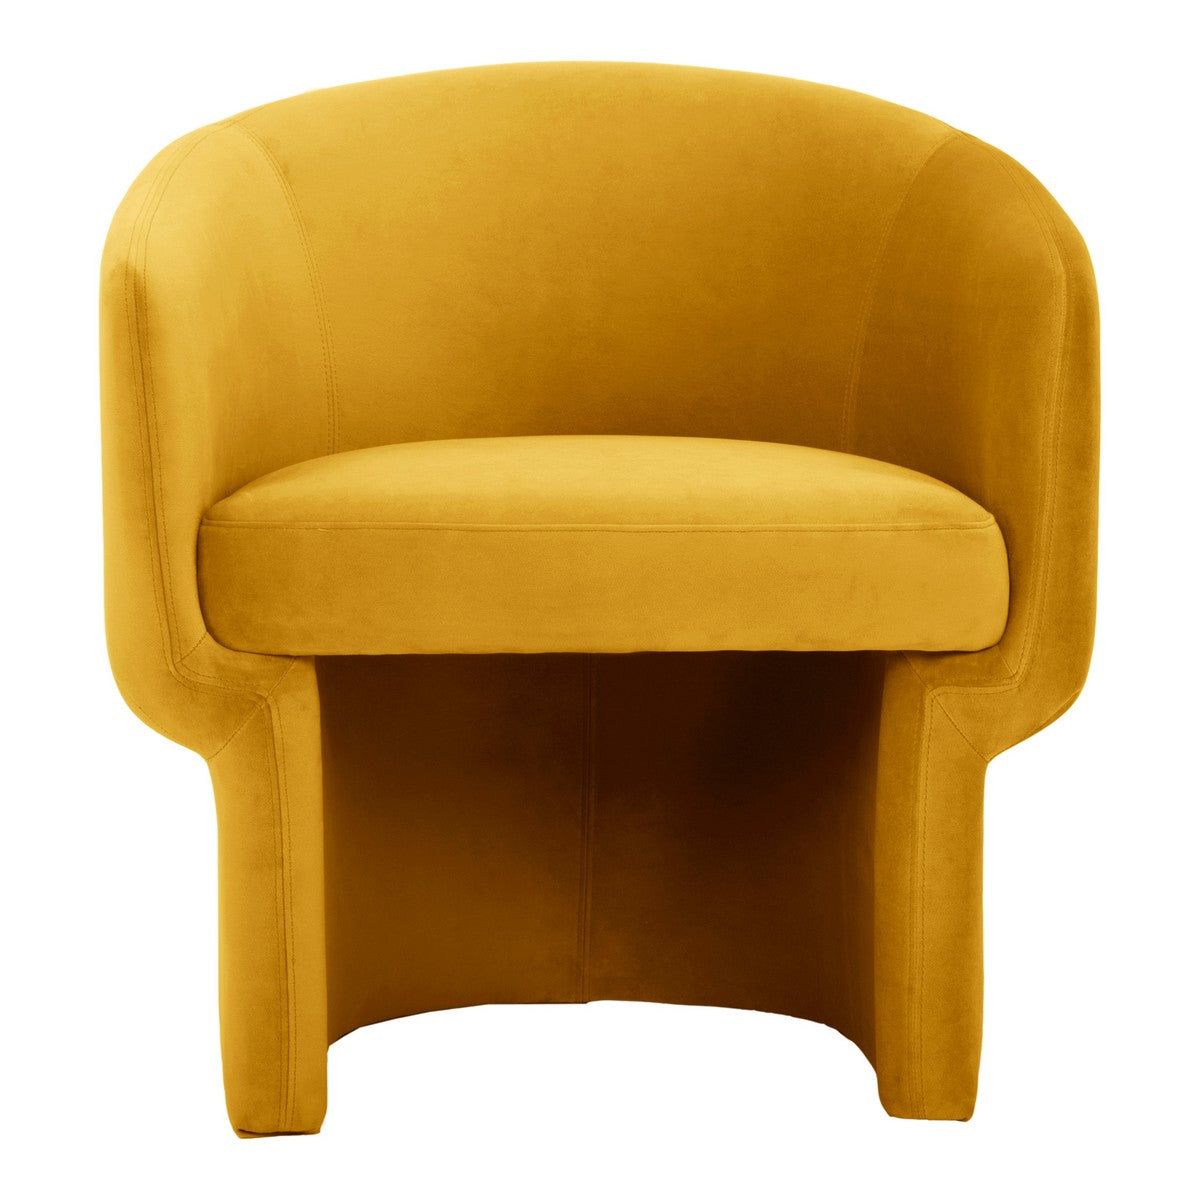 Moe's Home Collection Franco Chair Mustard - JM-1005-09 - Moe's Home Collection - lounge chairs - Minimal And Modern - 1